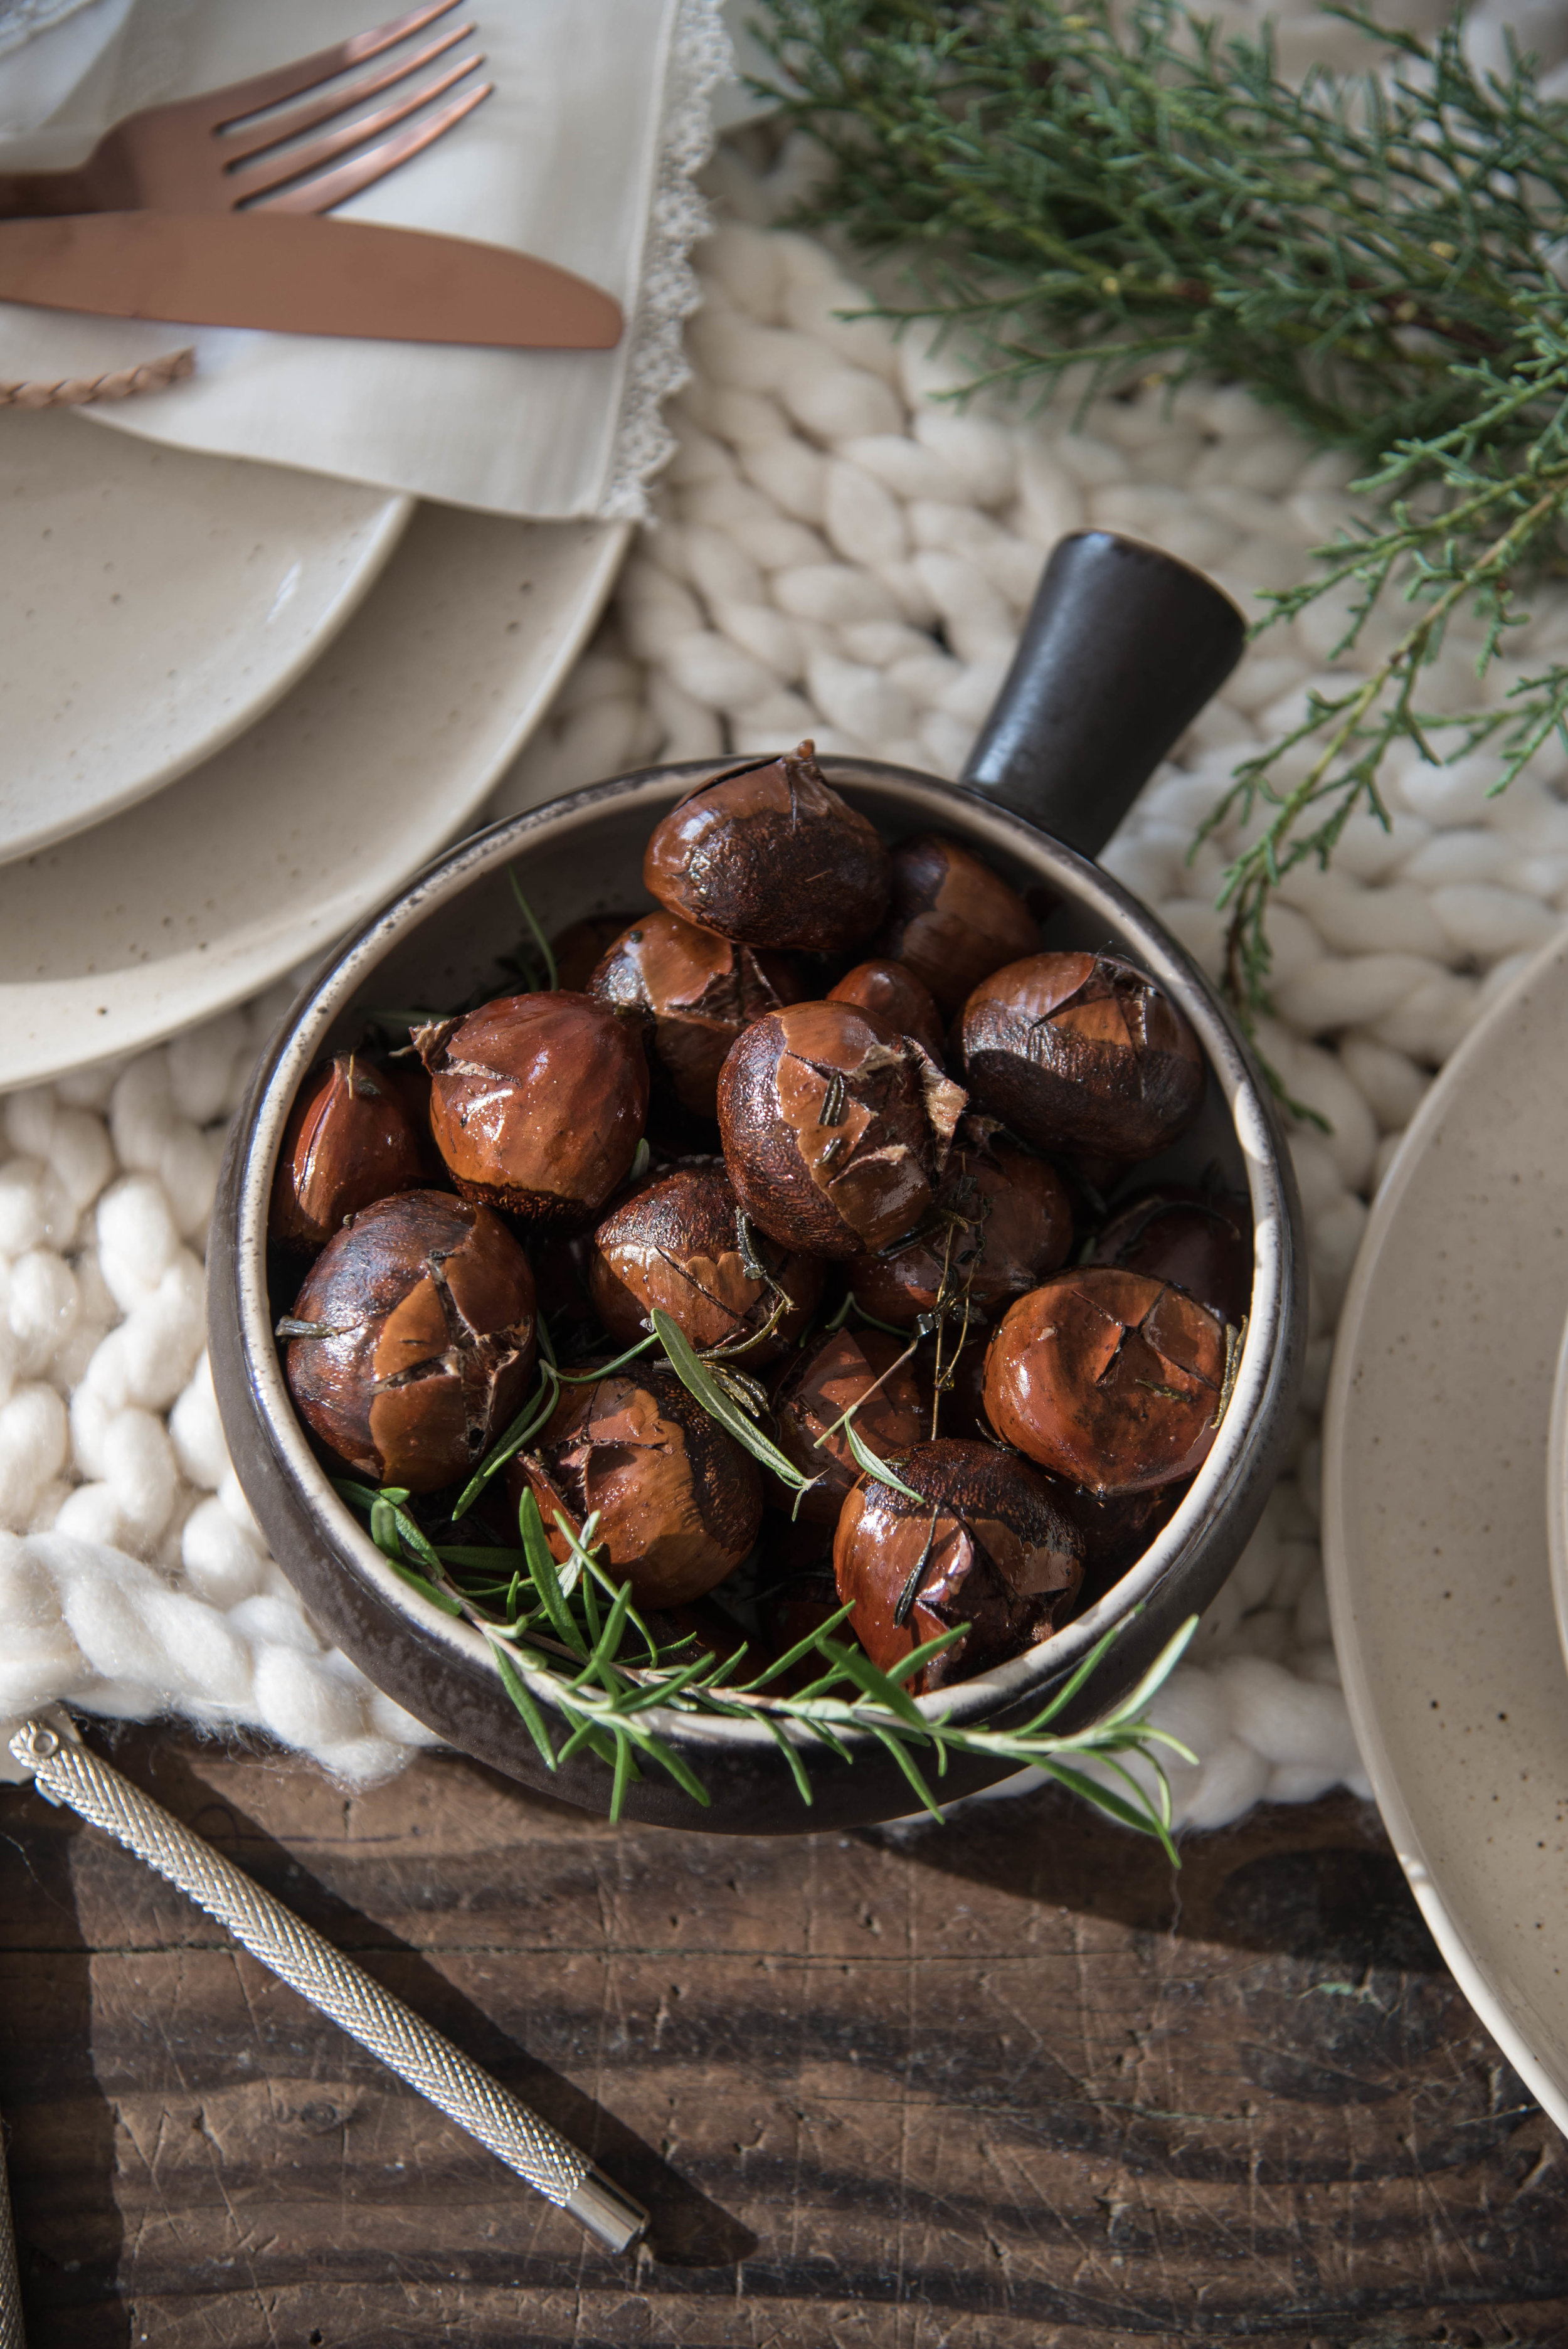 ROSE & IVY Journal Celebrate the Season Roasted Chestnuts with Rosemary & Thyme